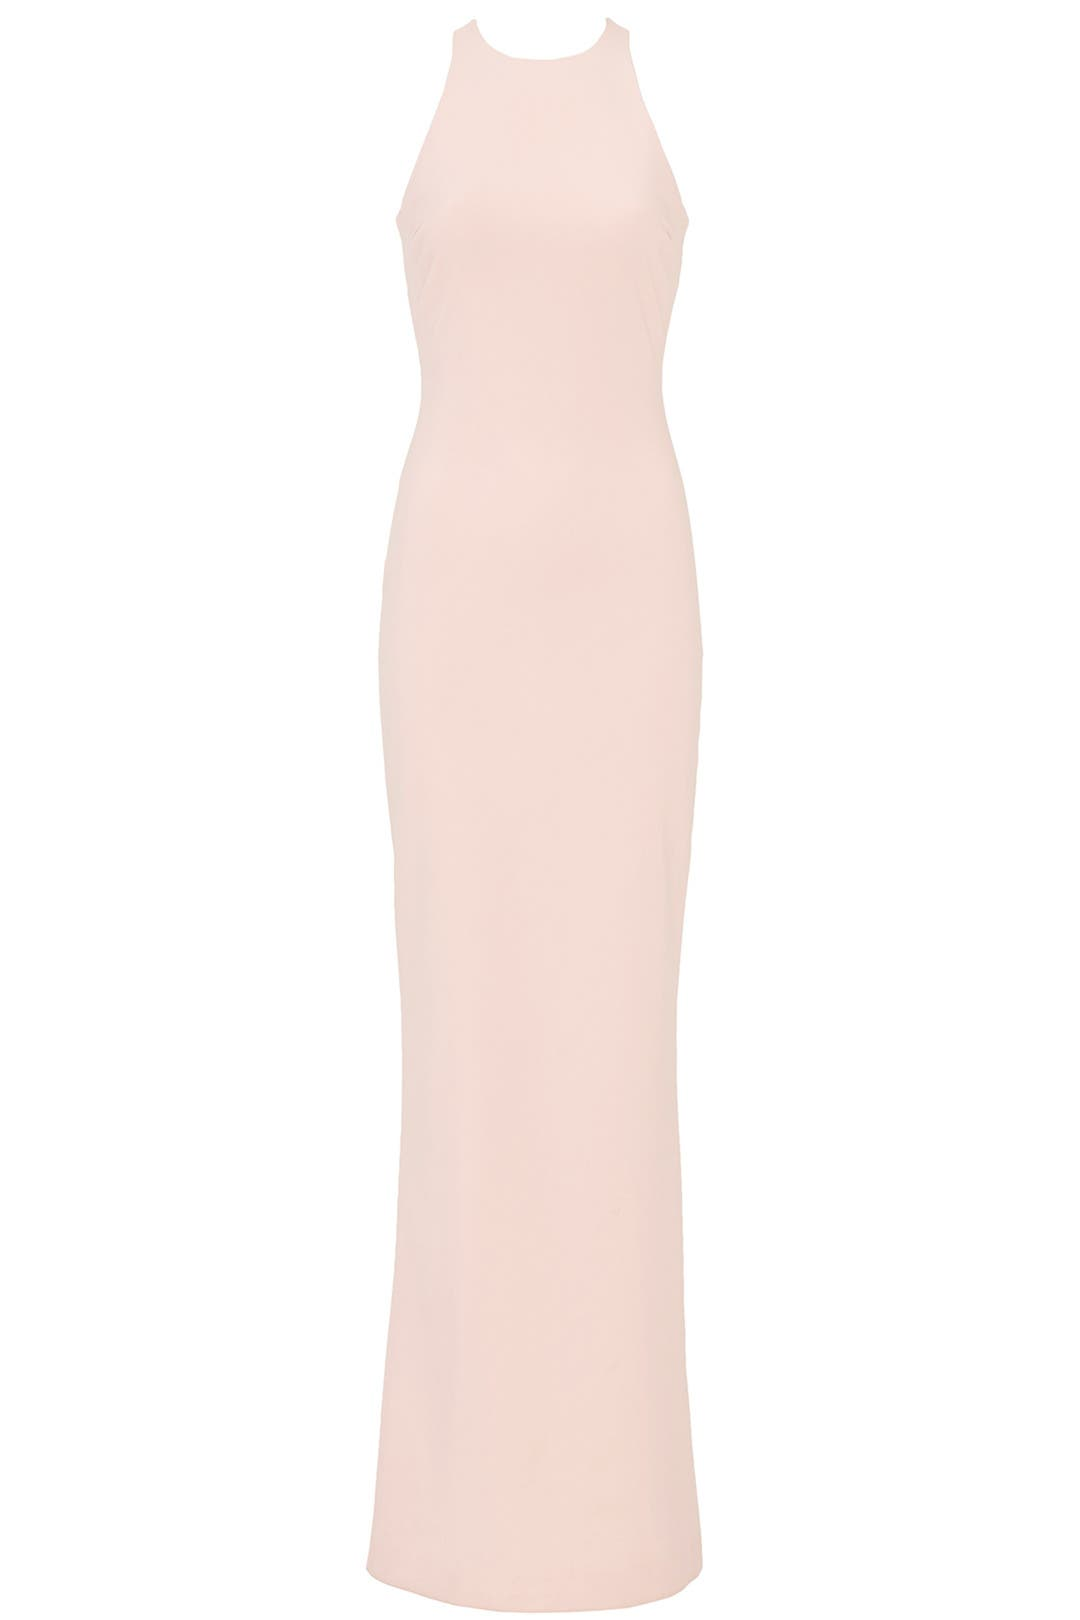 Blush Orley Gown by Elizabeth and James for $80 - $100 | Rent the Runway